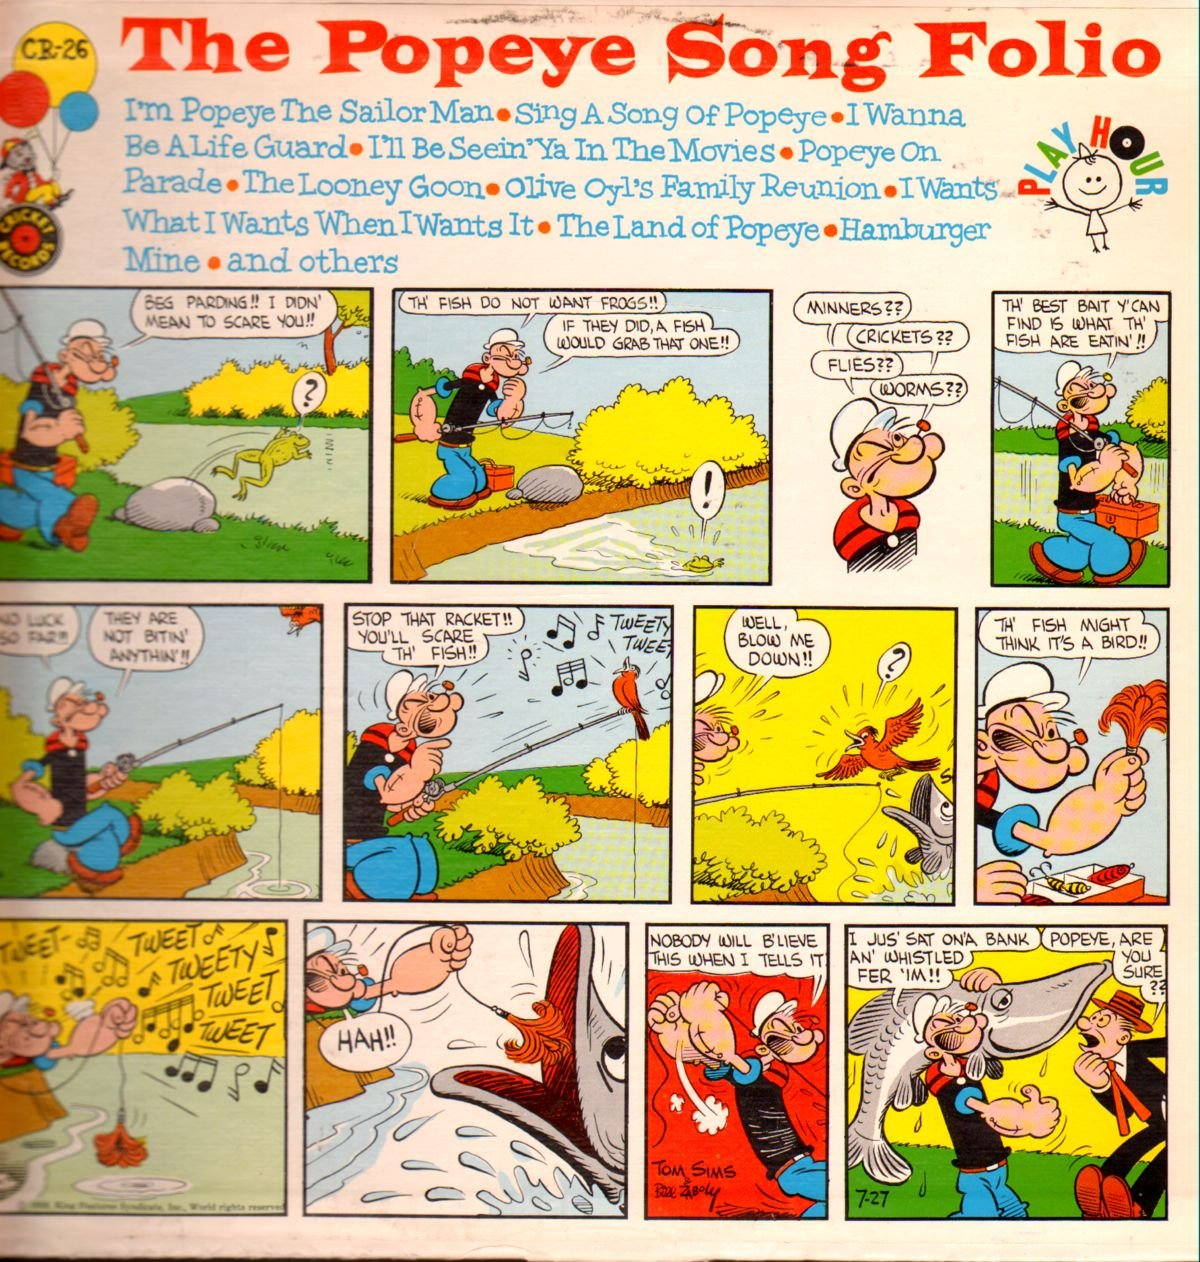 Captain Paul And The Seafaring Band Popeye Song Folio Vinyl Lp